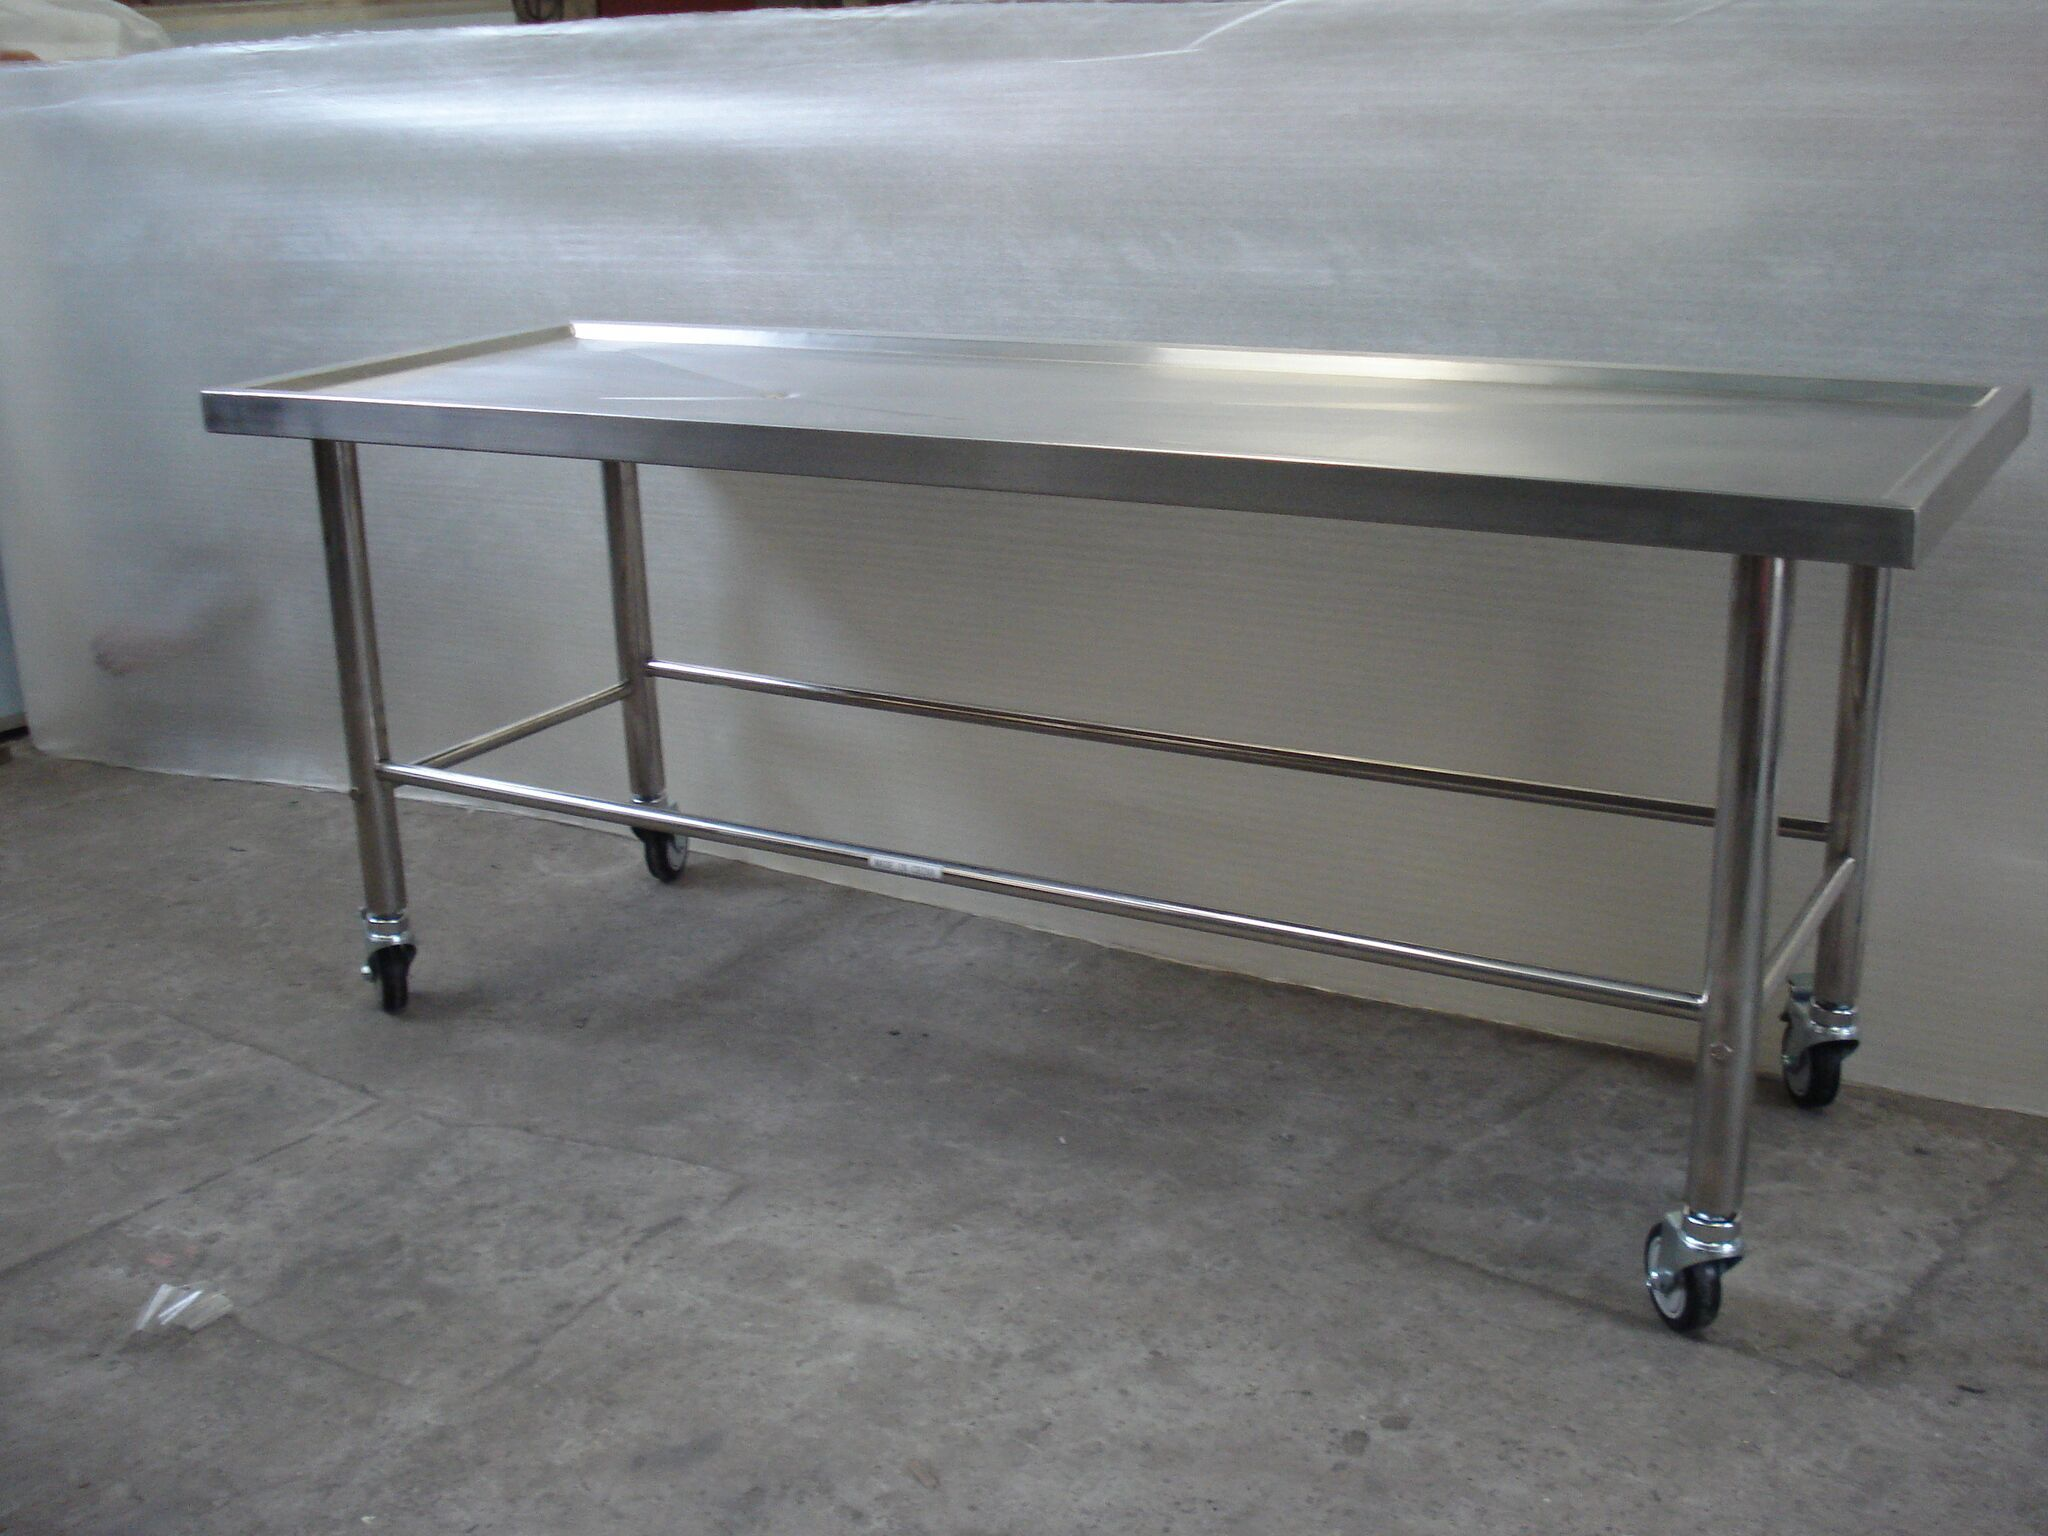 Stainless Steel Dissecting Table Autopsy Table Manufacturers, Stainless Steel Dissecting Table Autopsy Table Factory, Supply Stainless Steel Dissecting Table Autopsy Table